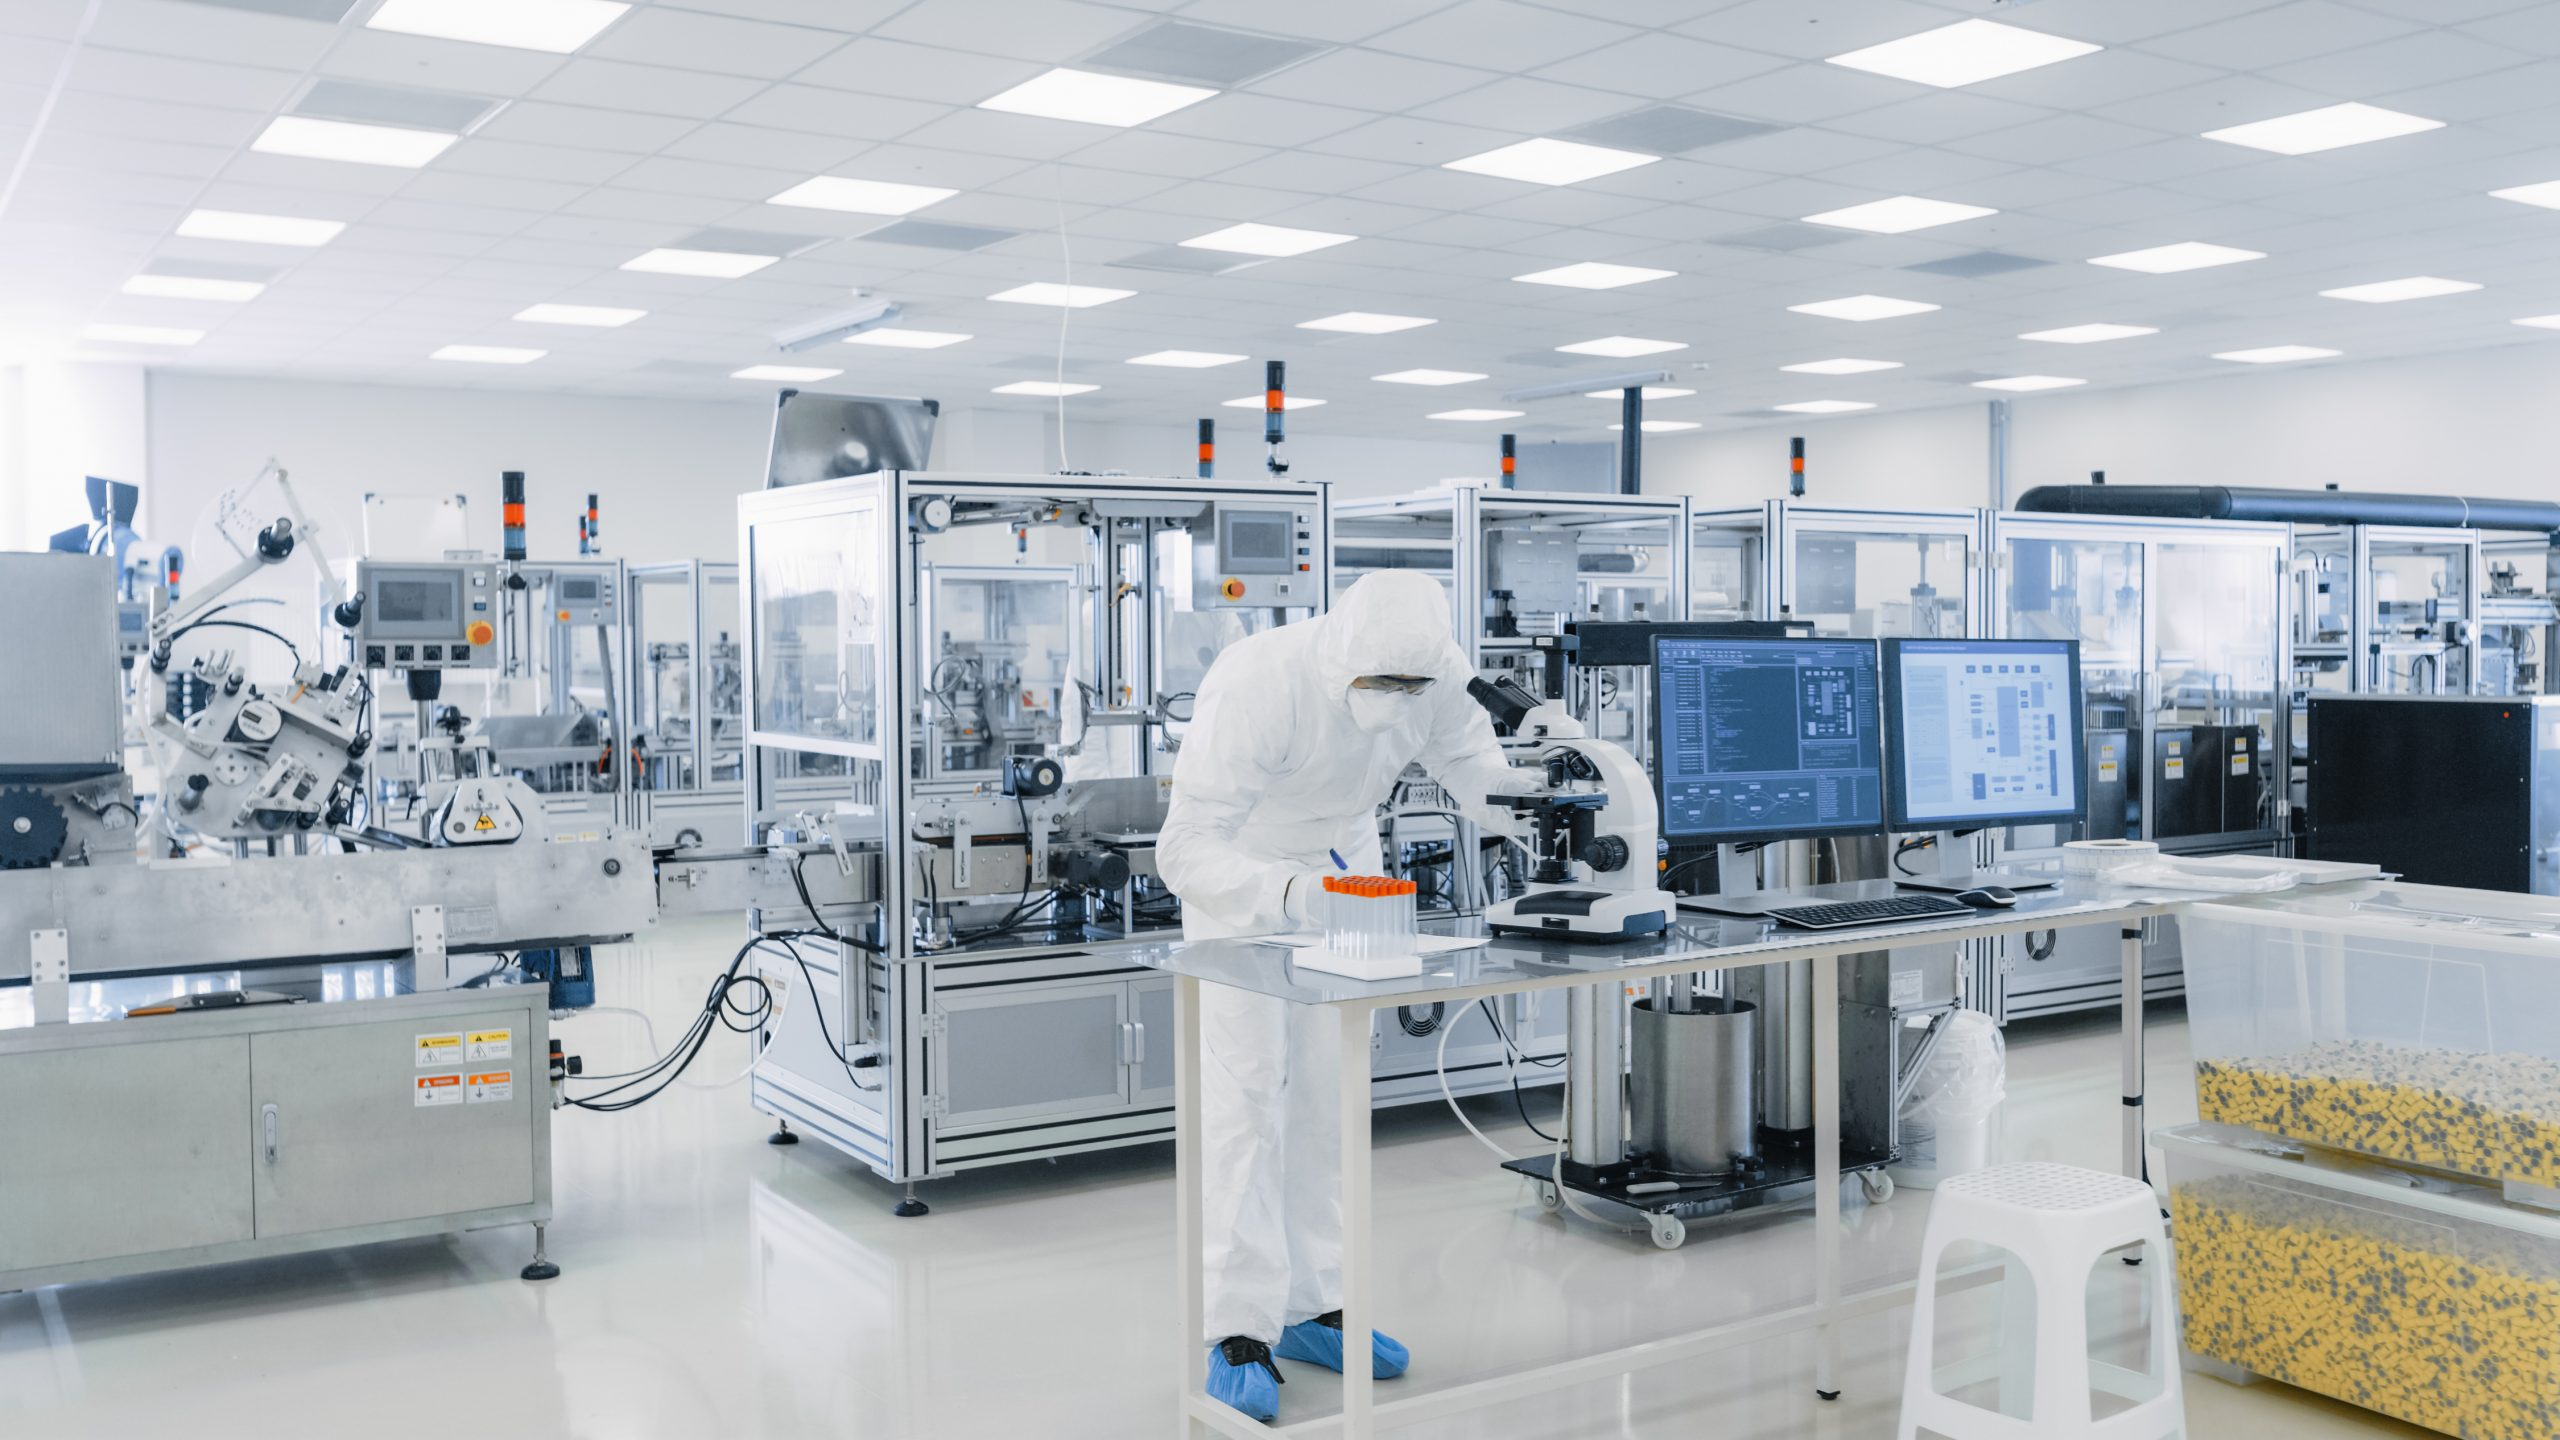 Alarm Management's Role in the Pharmaceutical Industry